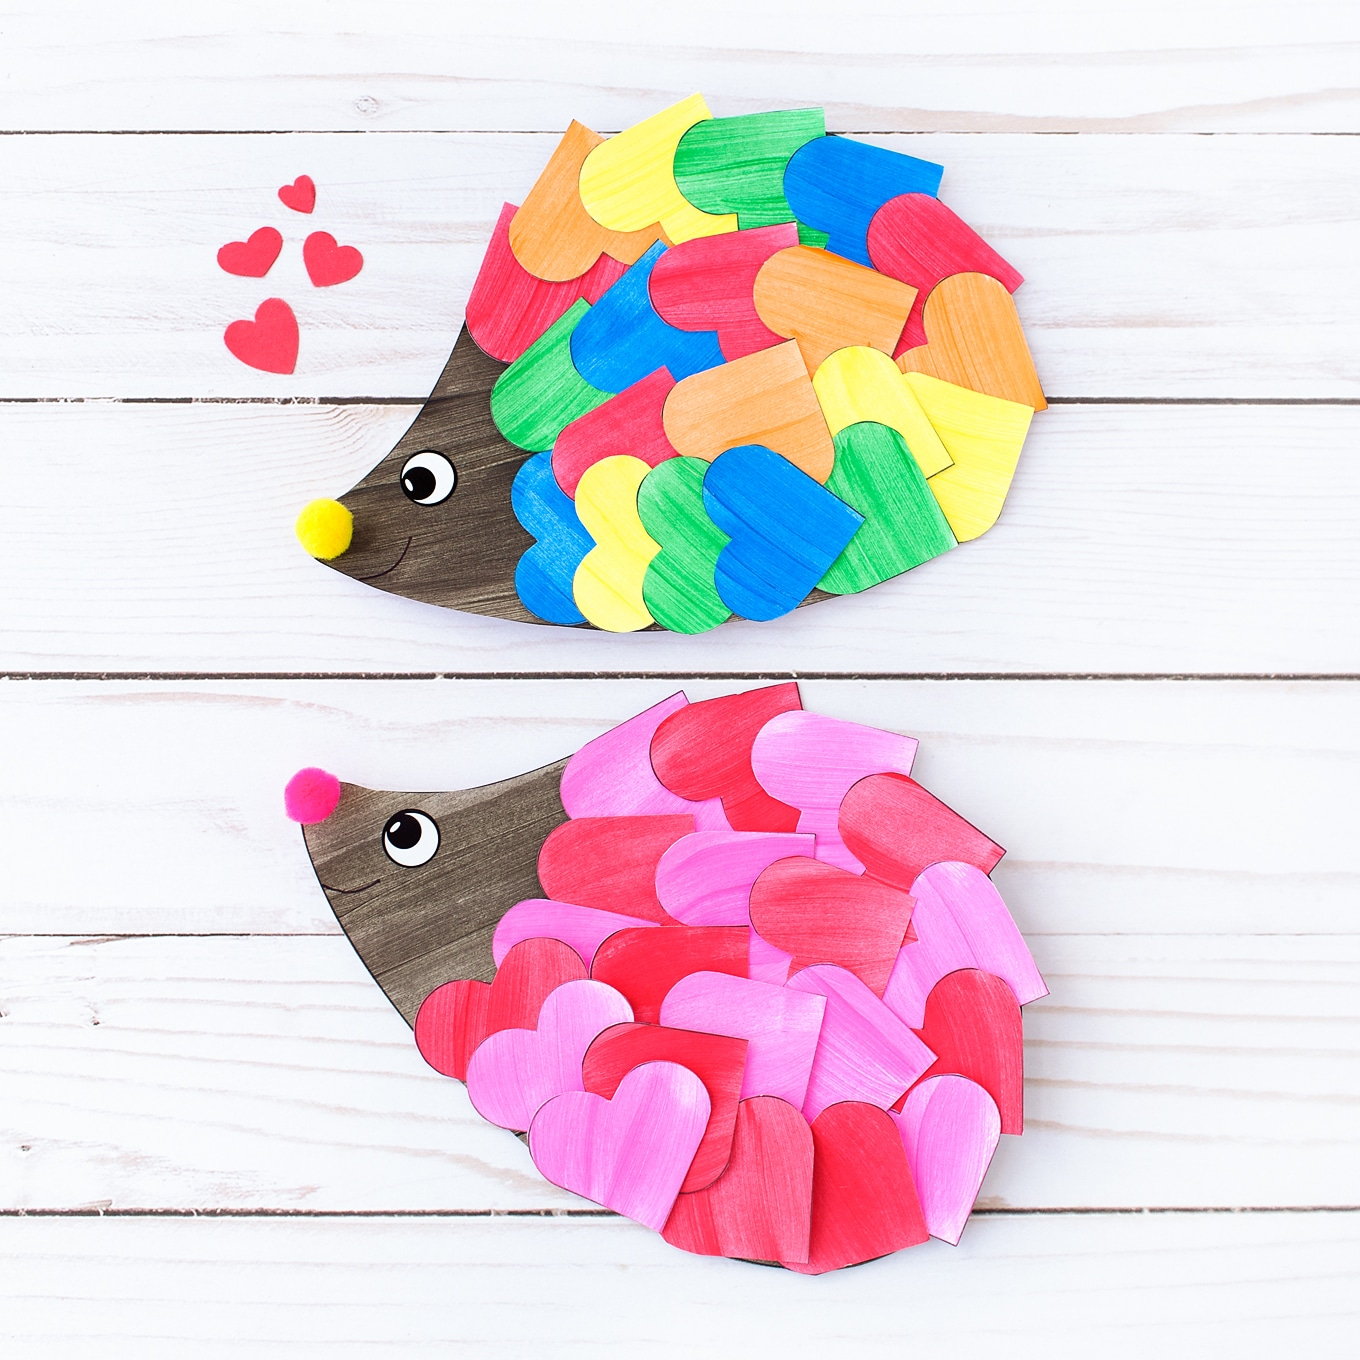 Rainbow and Pink Heart Hedgehog Crafts for Kids